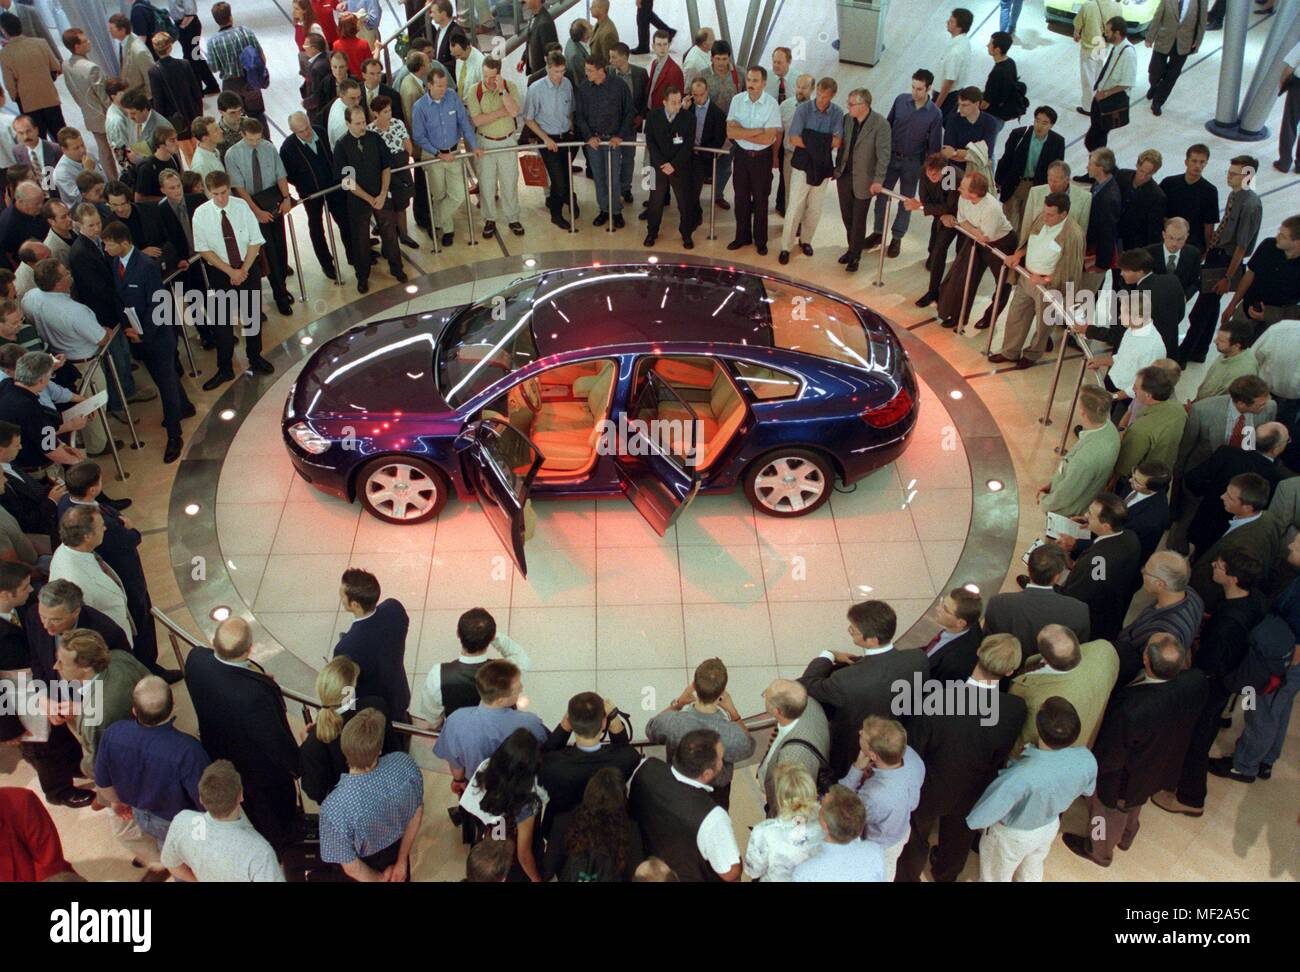 Numerous trade visitors came on 16.9.1999 shortly after the opening of the 58th International Motor Show in Frankfurt/Main for the VW Sedan Concept D. The car has a unusual for the luxury class Schragheckkarosserie and is powered by a V-ten-cylinder turbodiesel engine. The unit has five liters of displacement and makes 313 hp. The biggest car show in the world is open until 16.9.1999. Visitors to the IAA must be prepared for the coming days on tight crowds. Going from one speed-mobile to the next will only be possible at a snail's pace for most car enthusiasts and will often end in traffic j - Stock Image